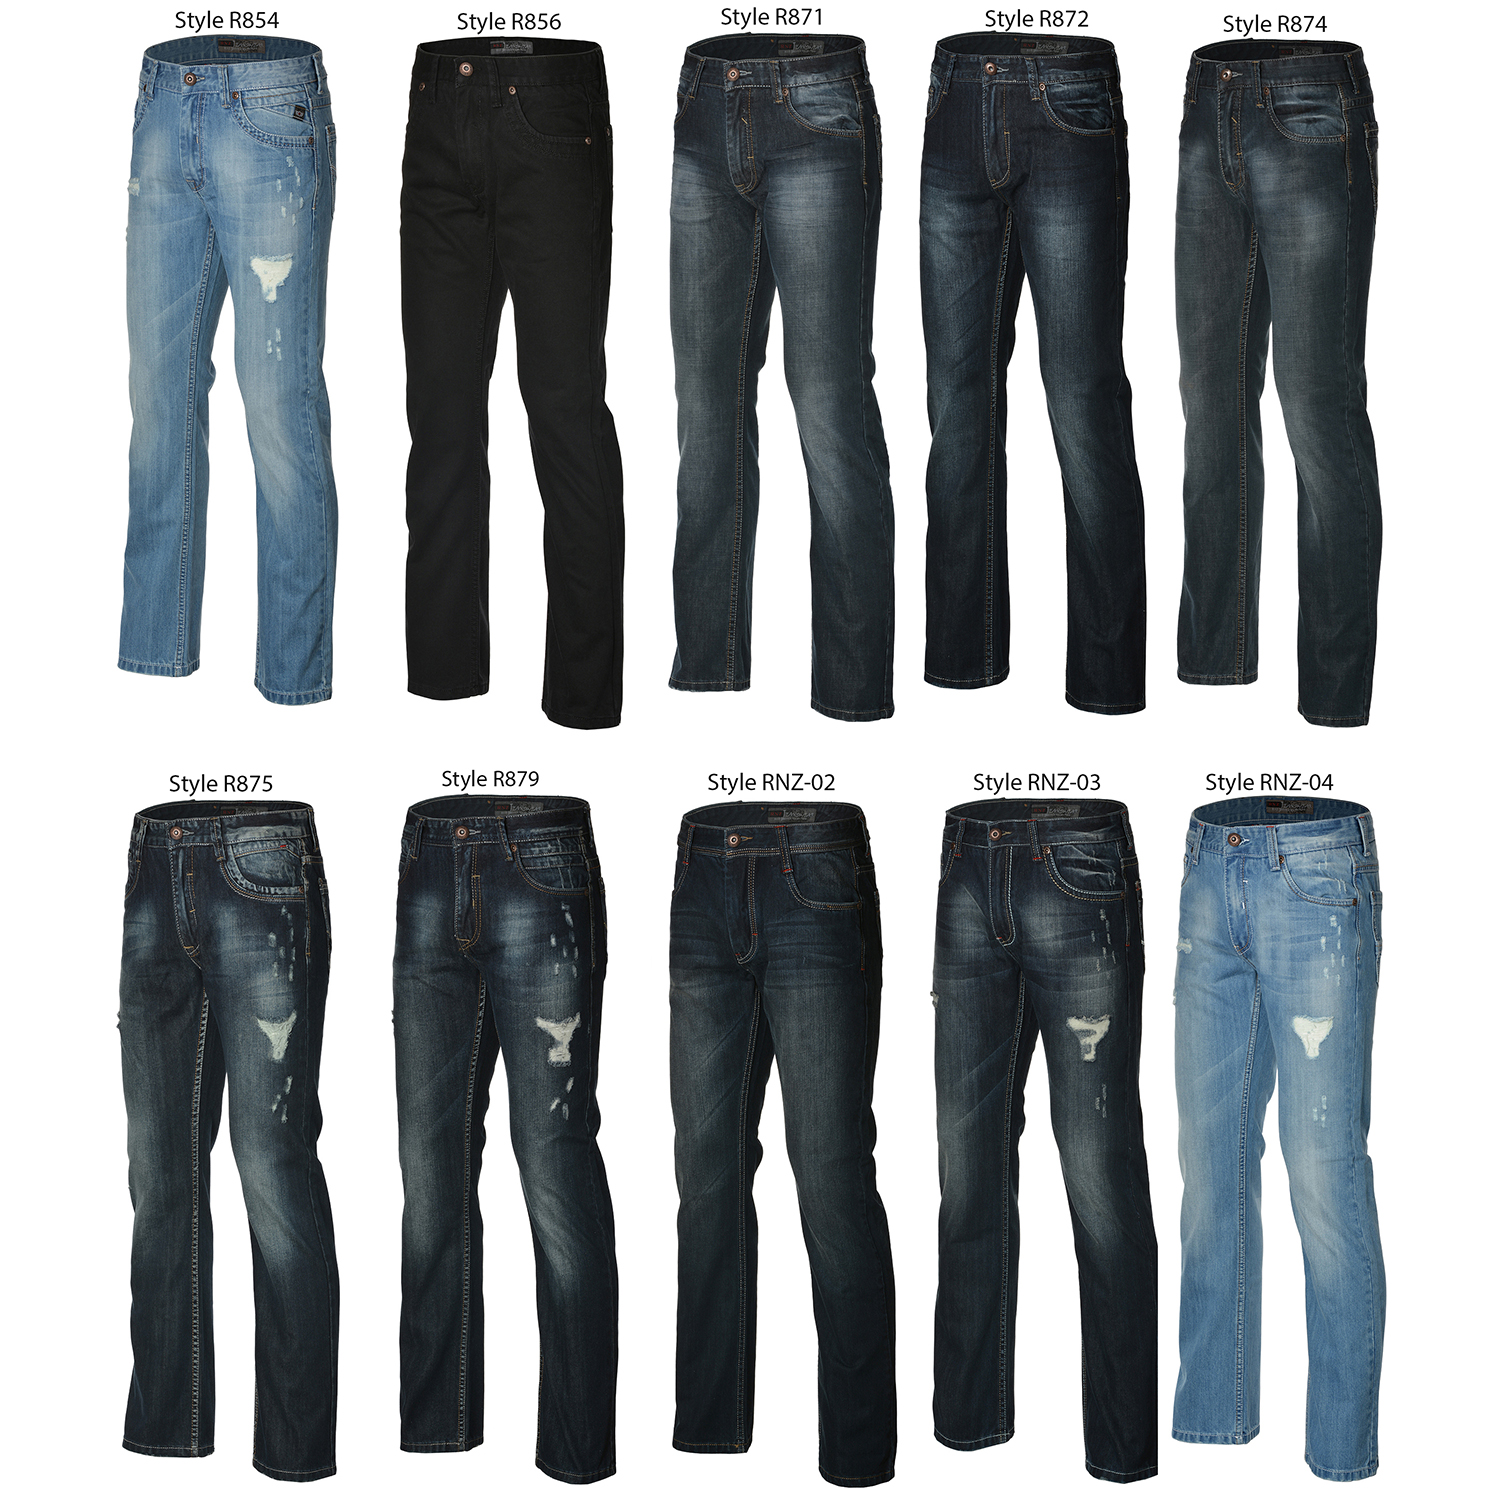 Women's Jeans. Discover designer and brand name women's jeggings, skinny jeans, straight jeans, bootcut jeans and flare jeans for roeprocjfc.ga, we are tracking trends in colored jeans, high rise denim and special hem details for women!